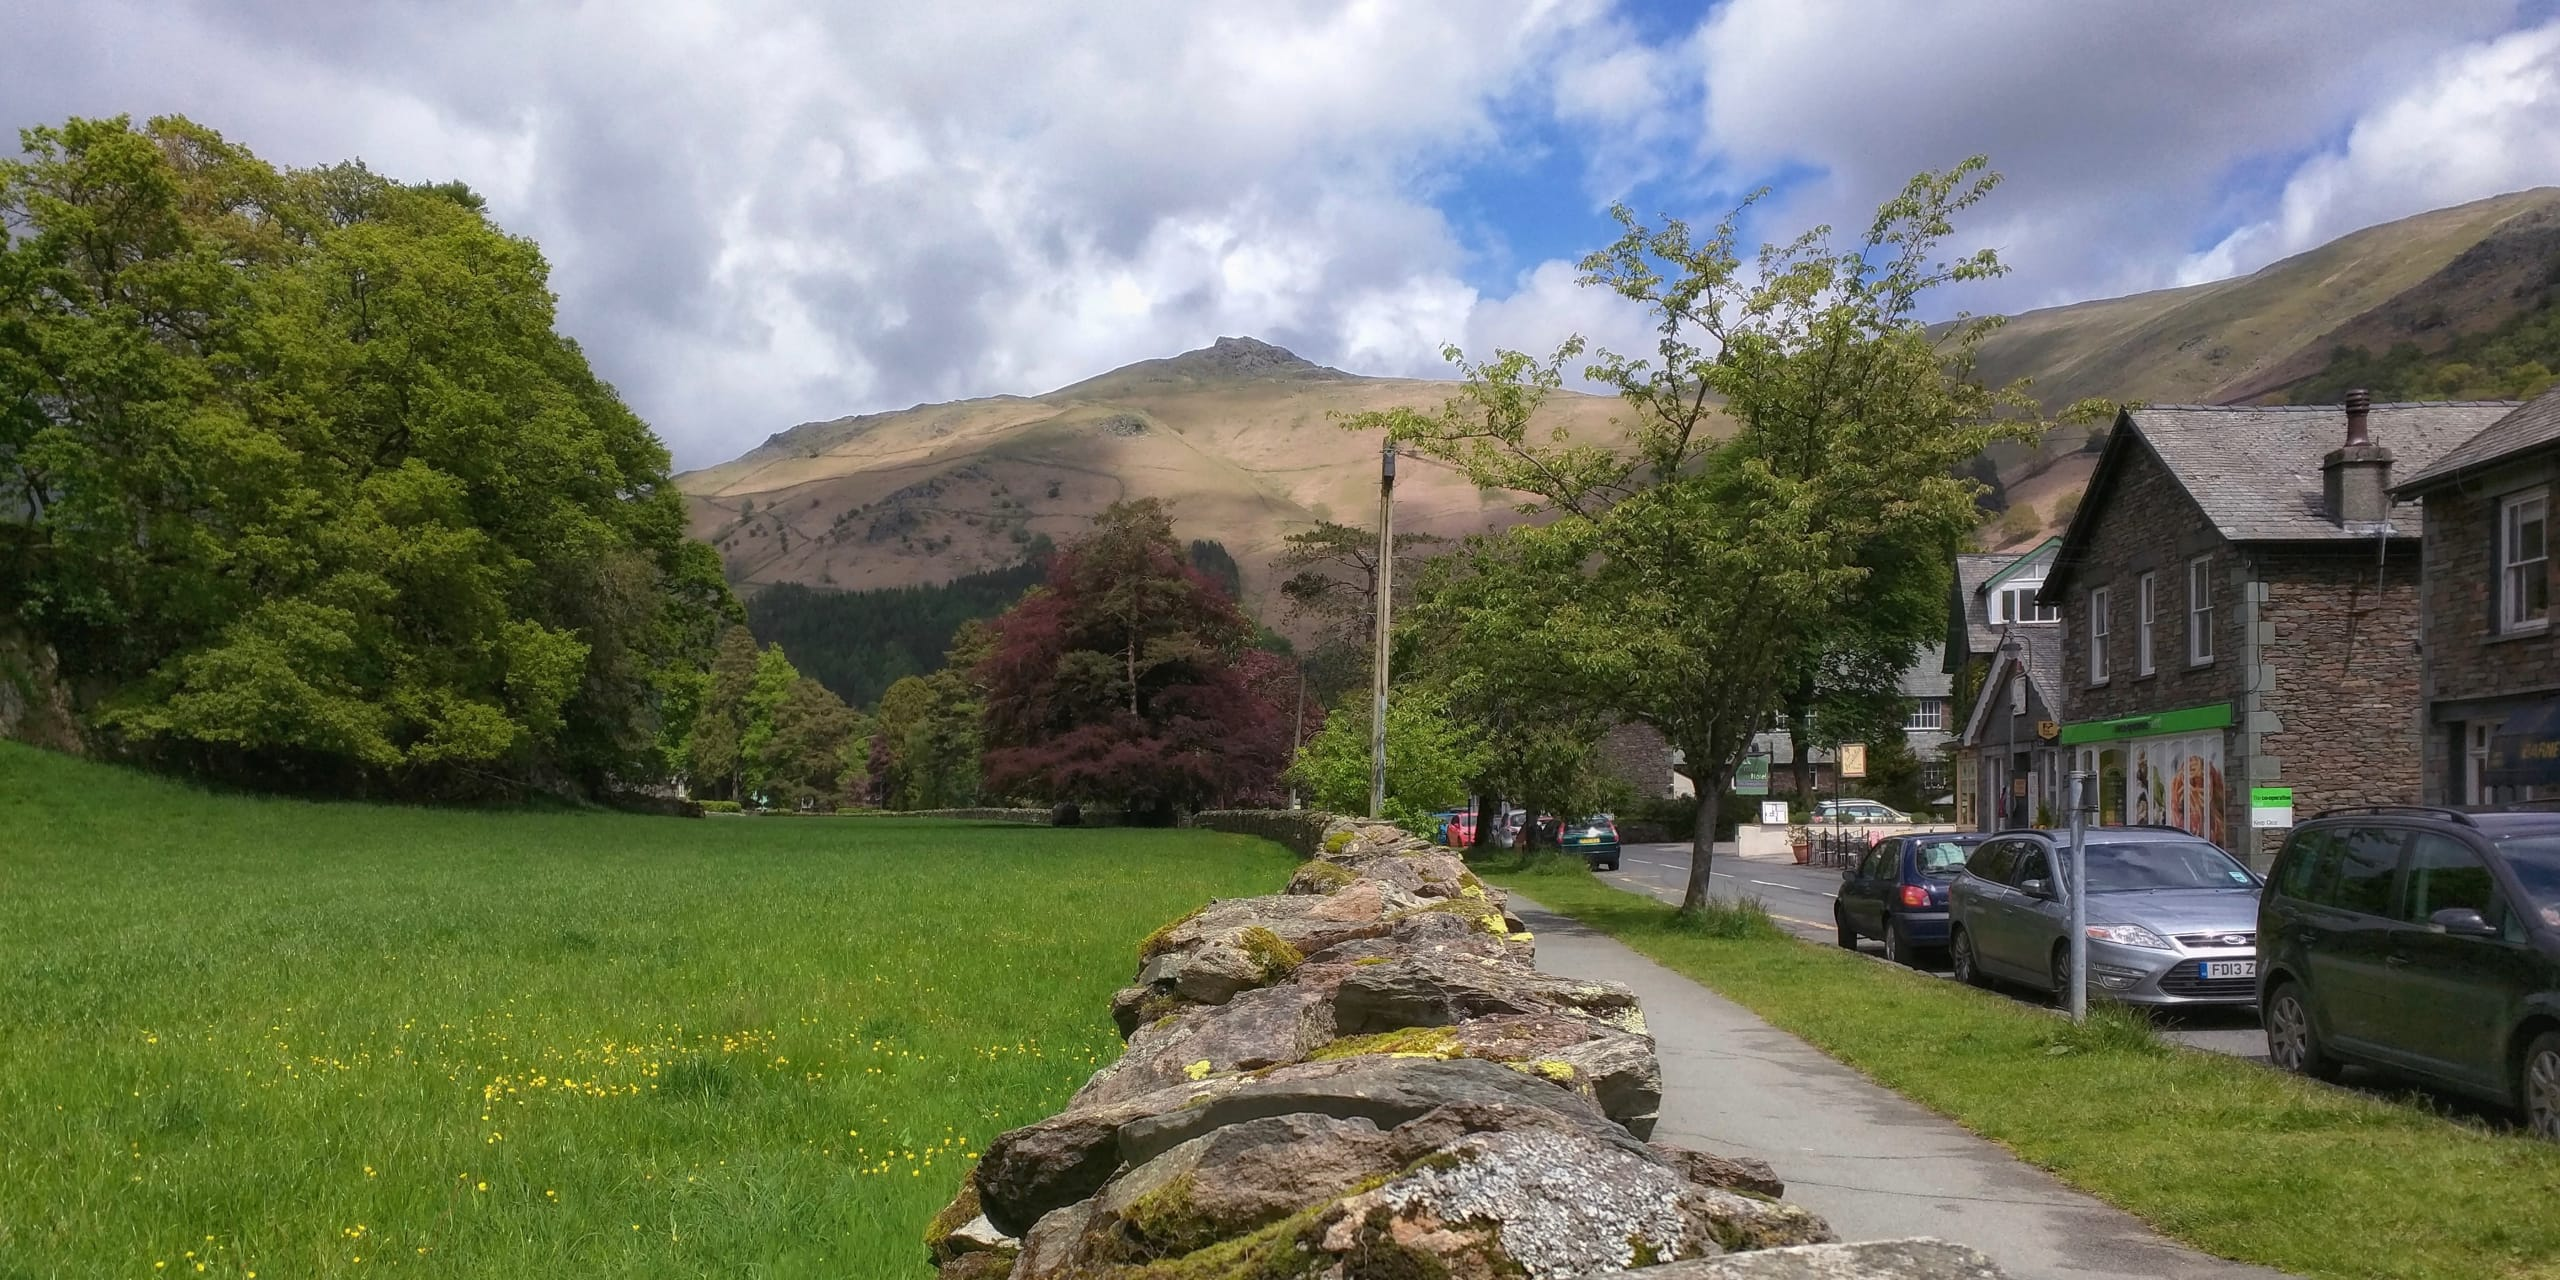 Things To Do In Grasmere, Lake District